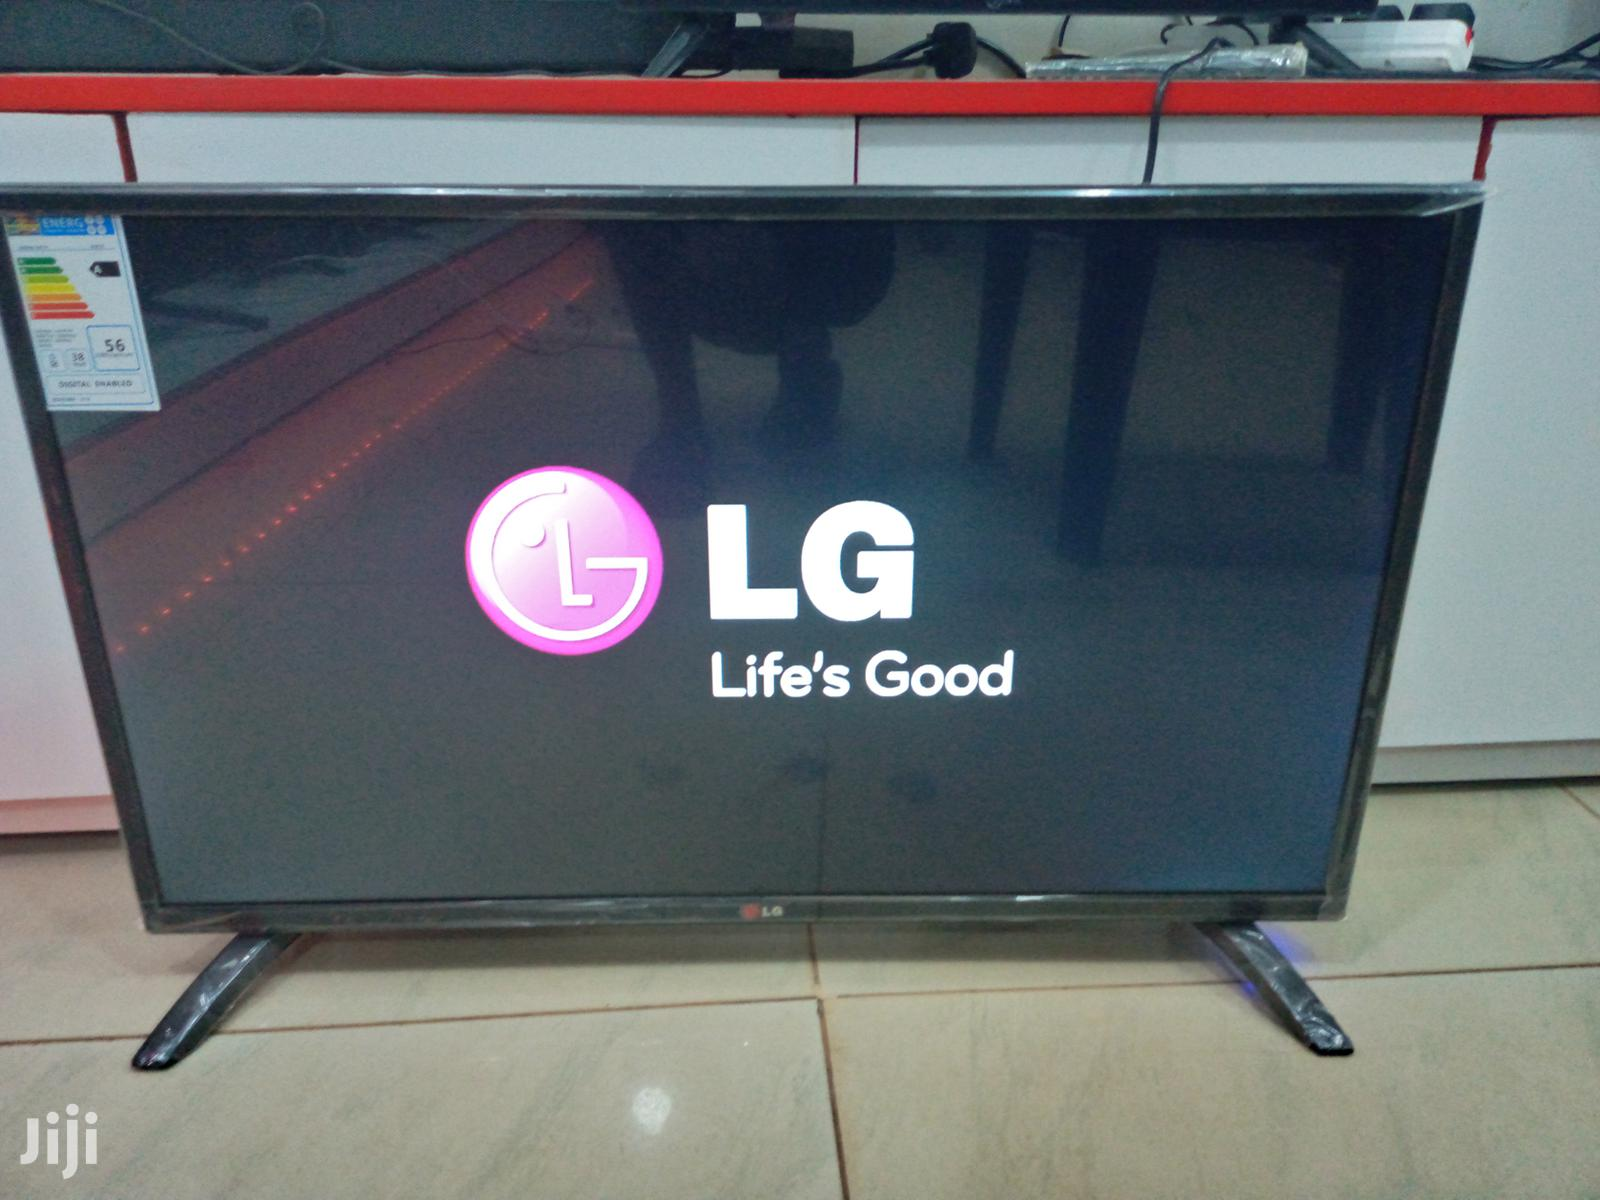 Archive: 32 Inches Led Lg Flat Screen Digital